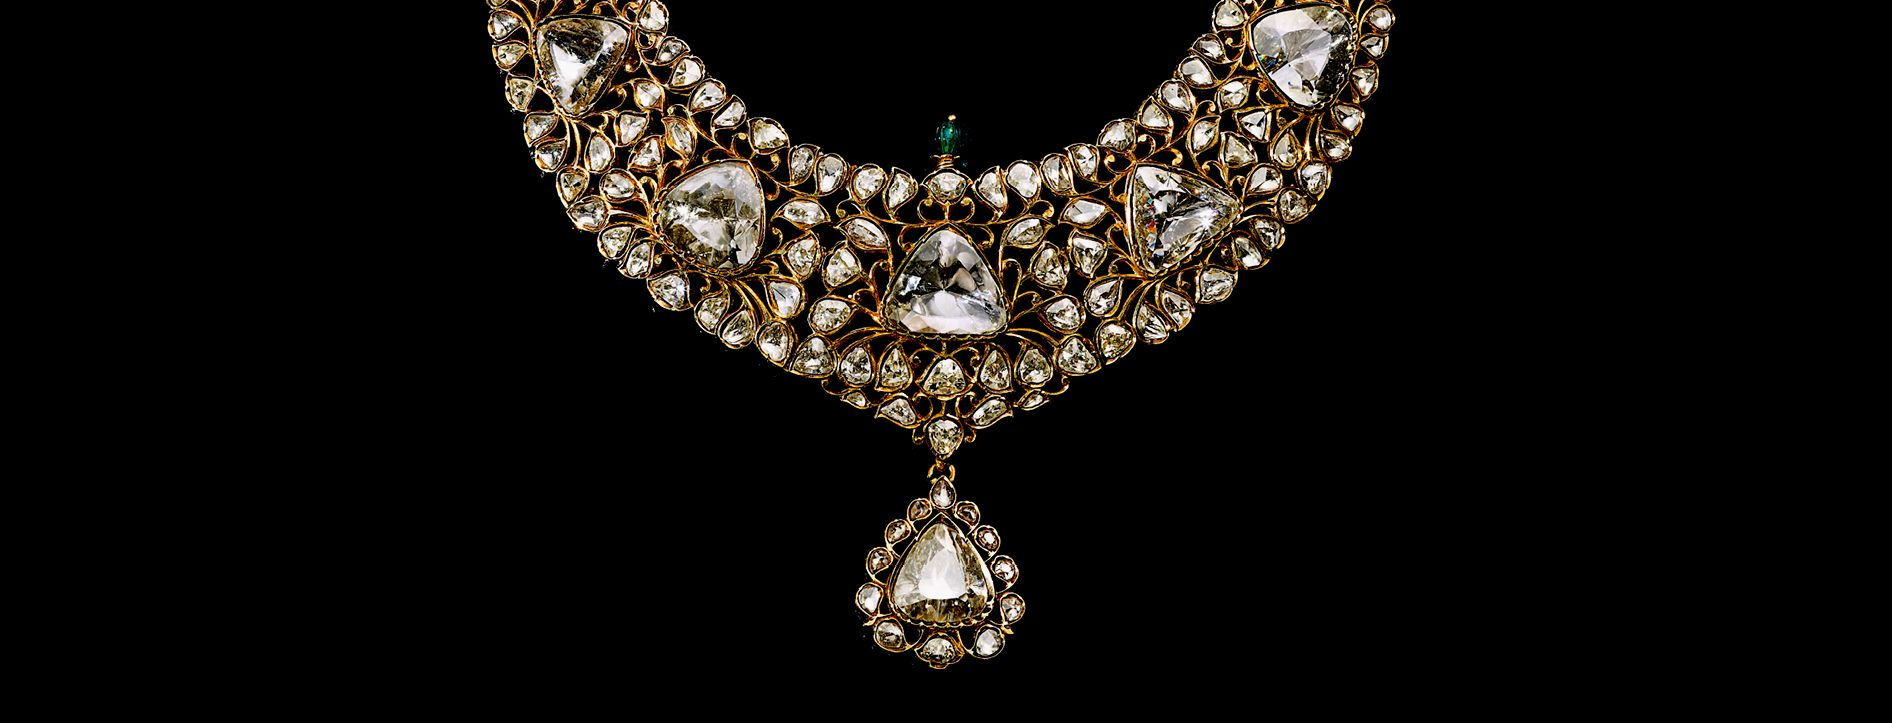 Expert Advice: How To Buy Jewellery At Auction